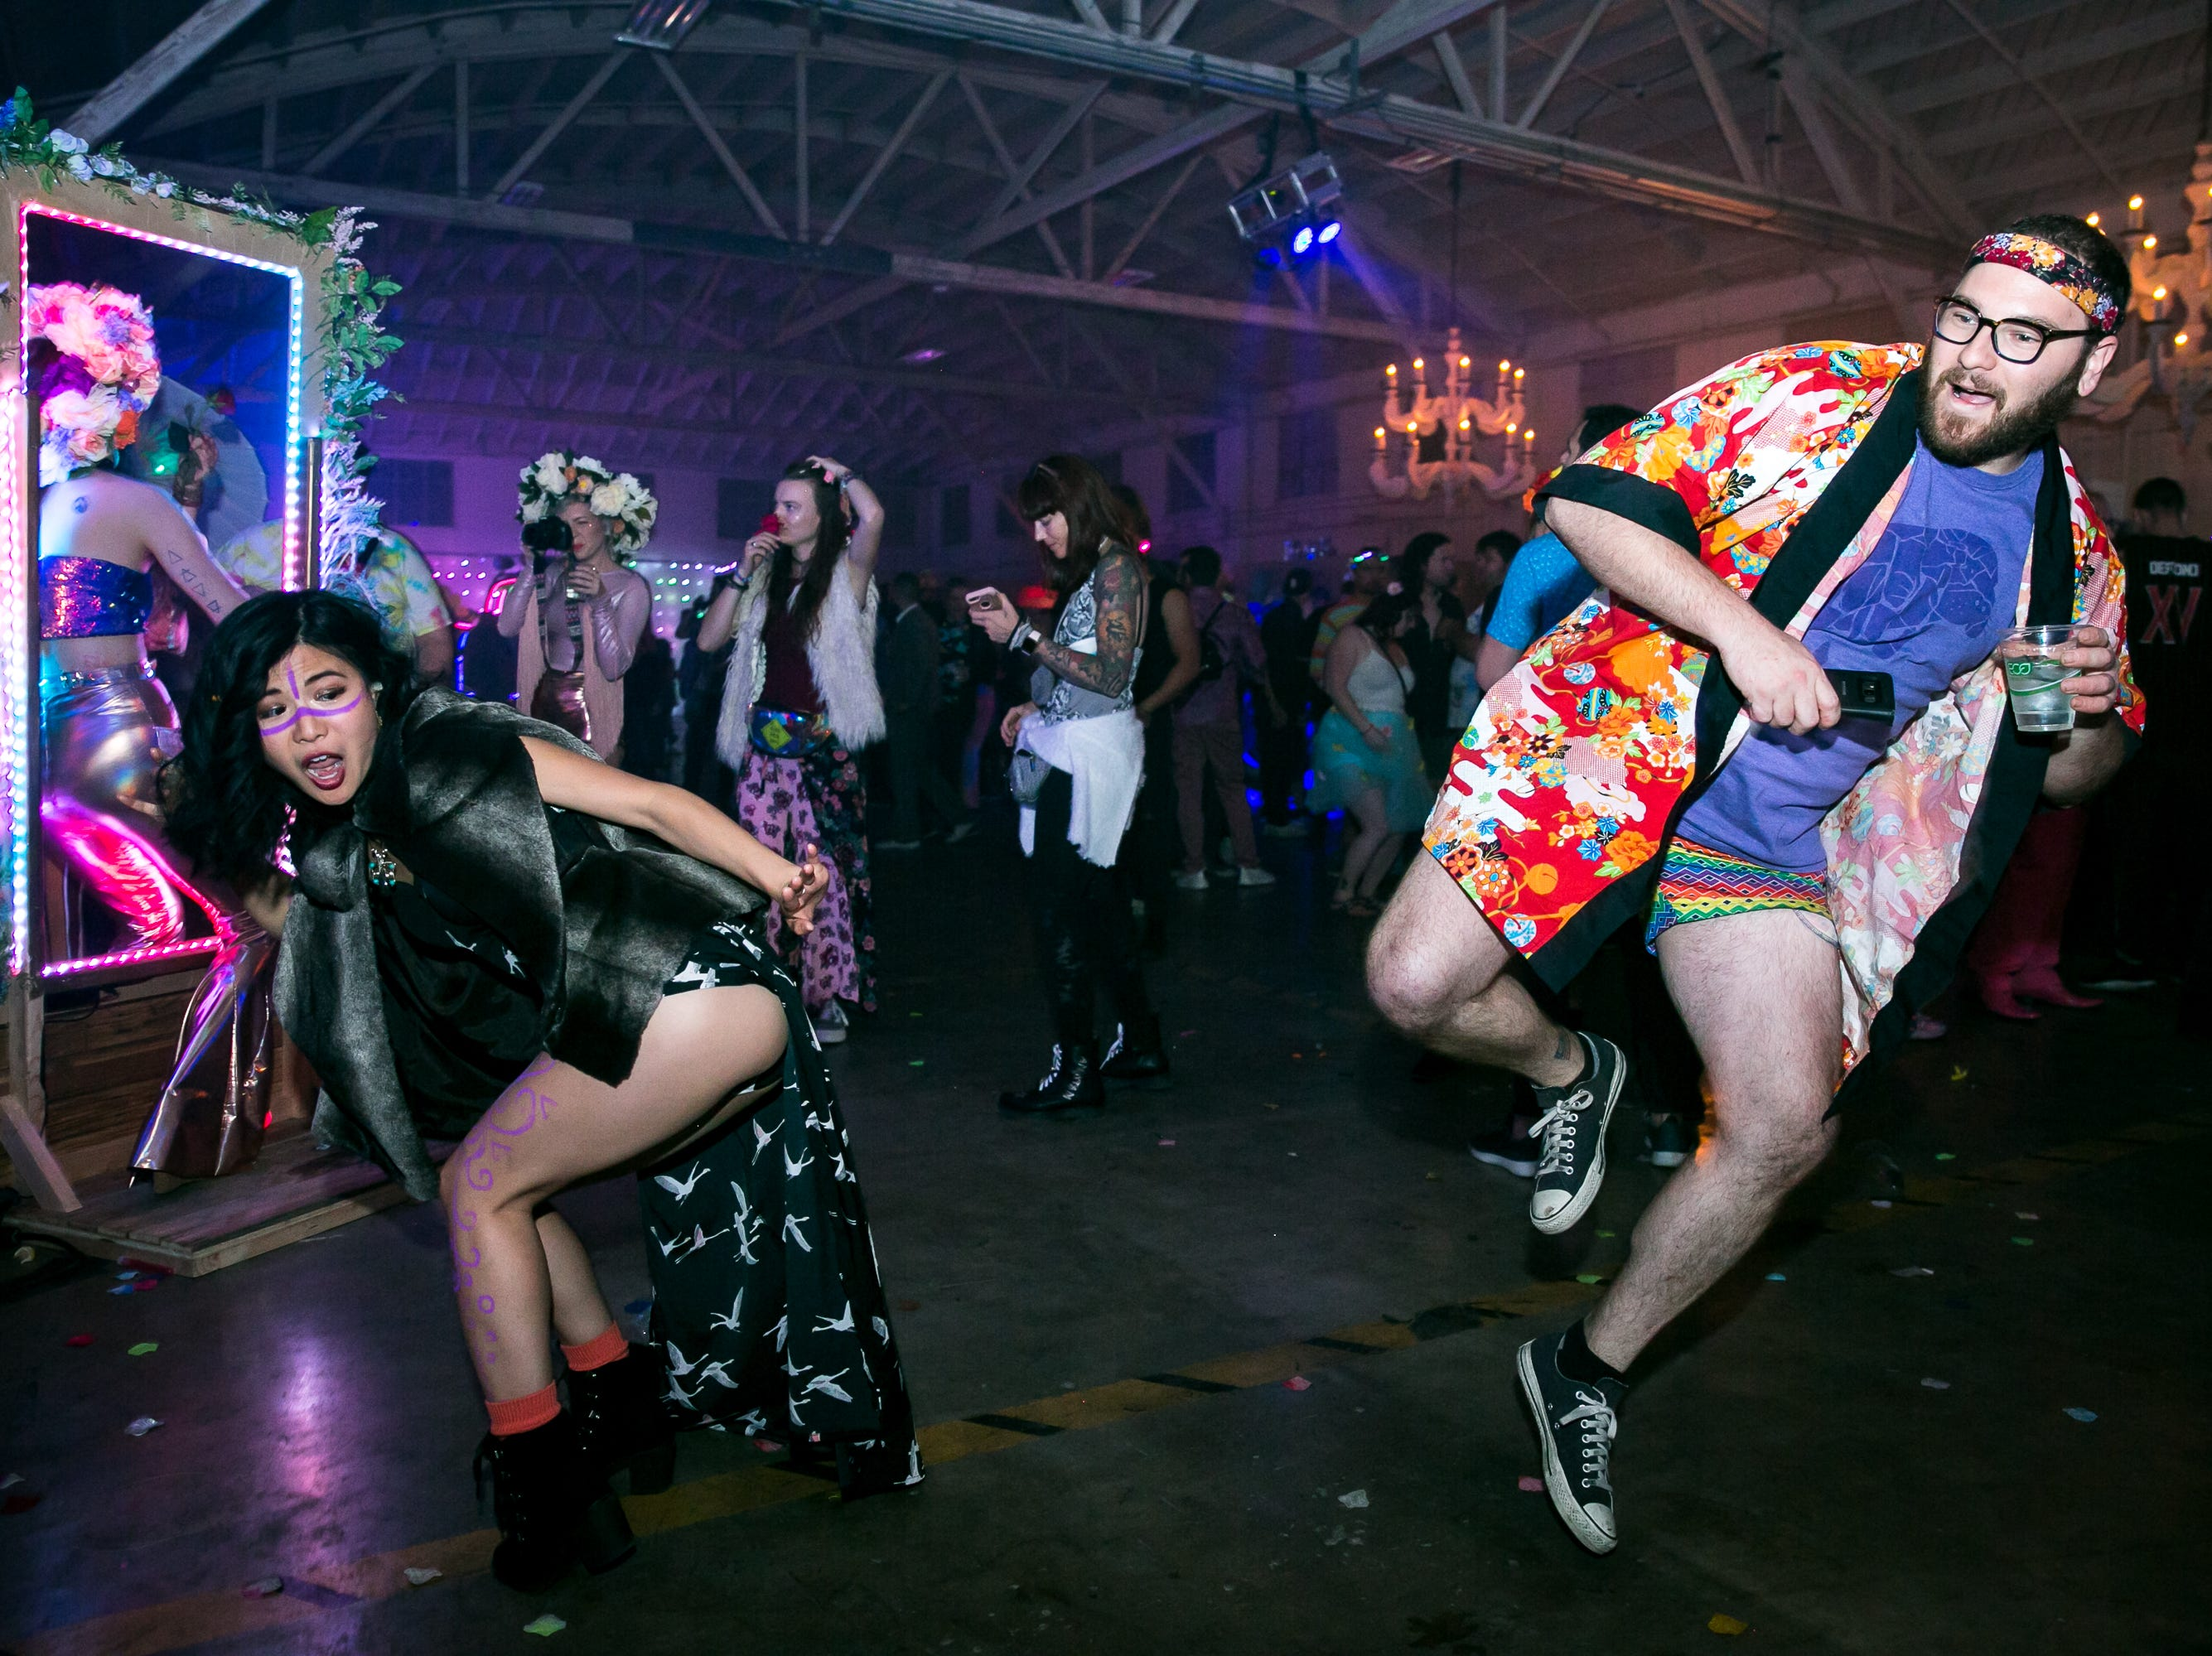 An impromptu dance battle erupted during Bloom at The Where?House Gallery on March 30, 2019.